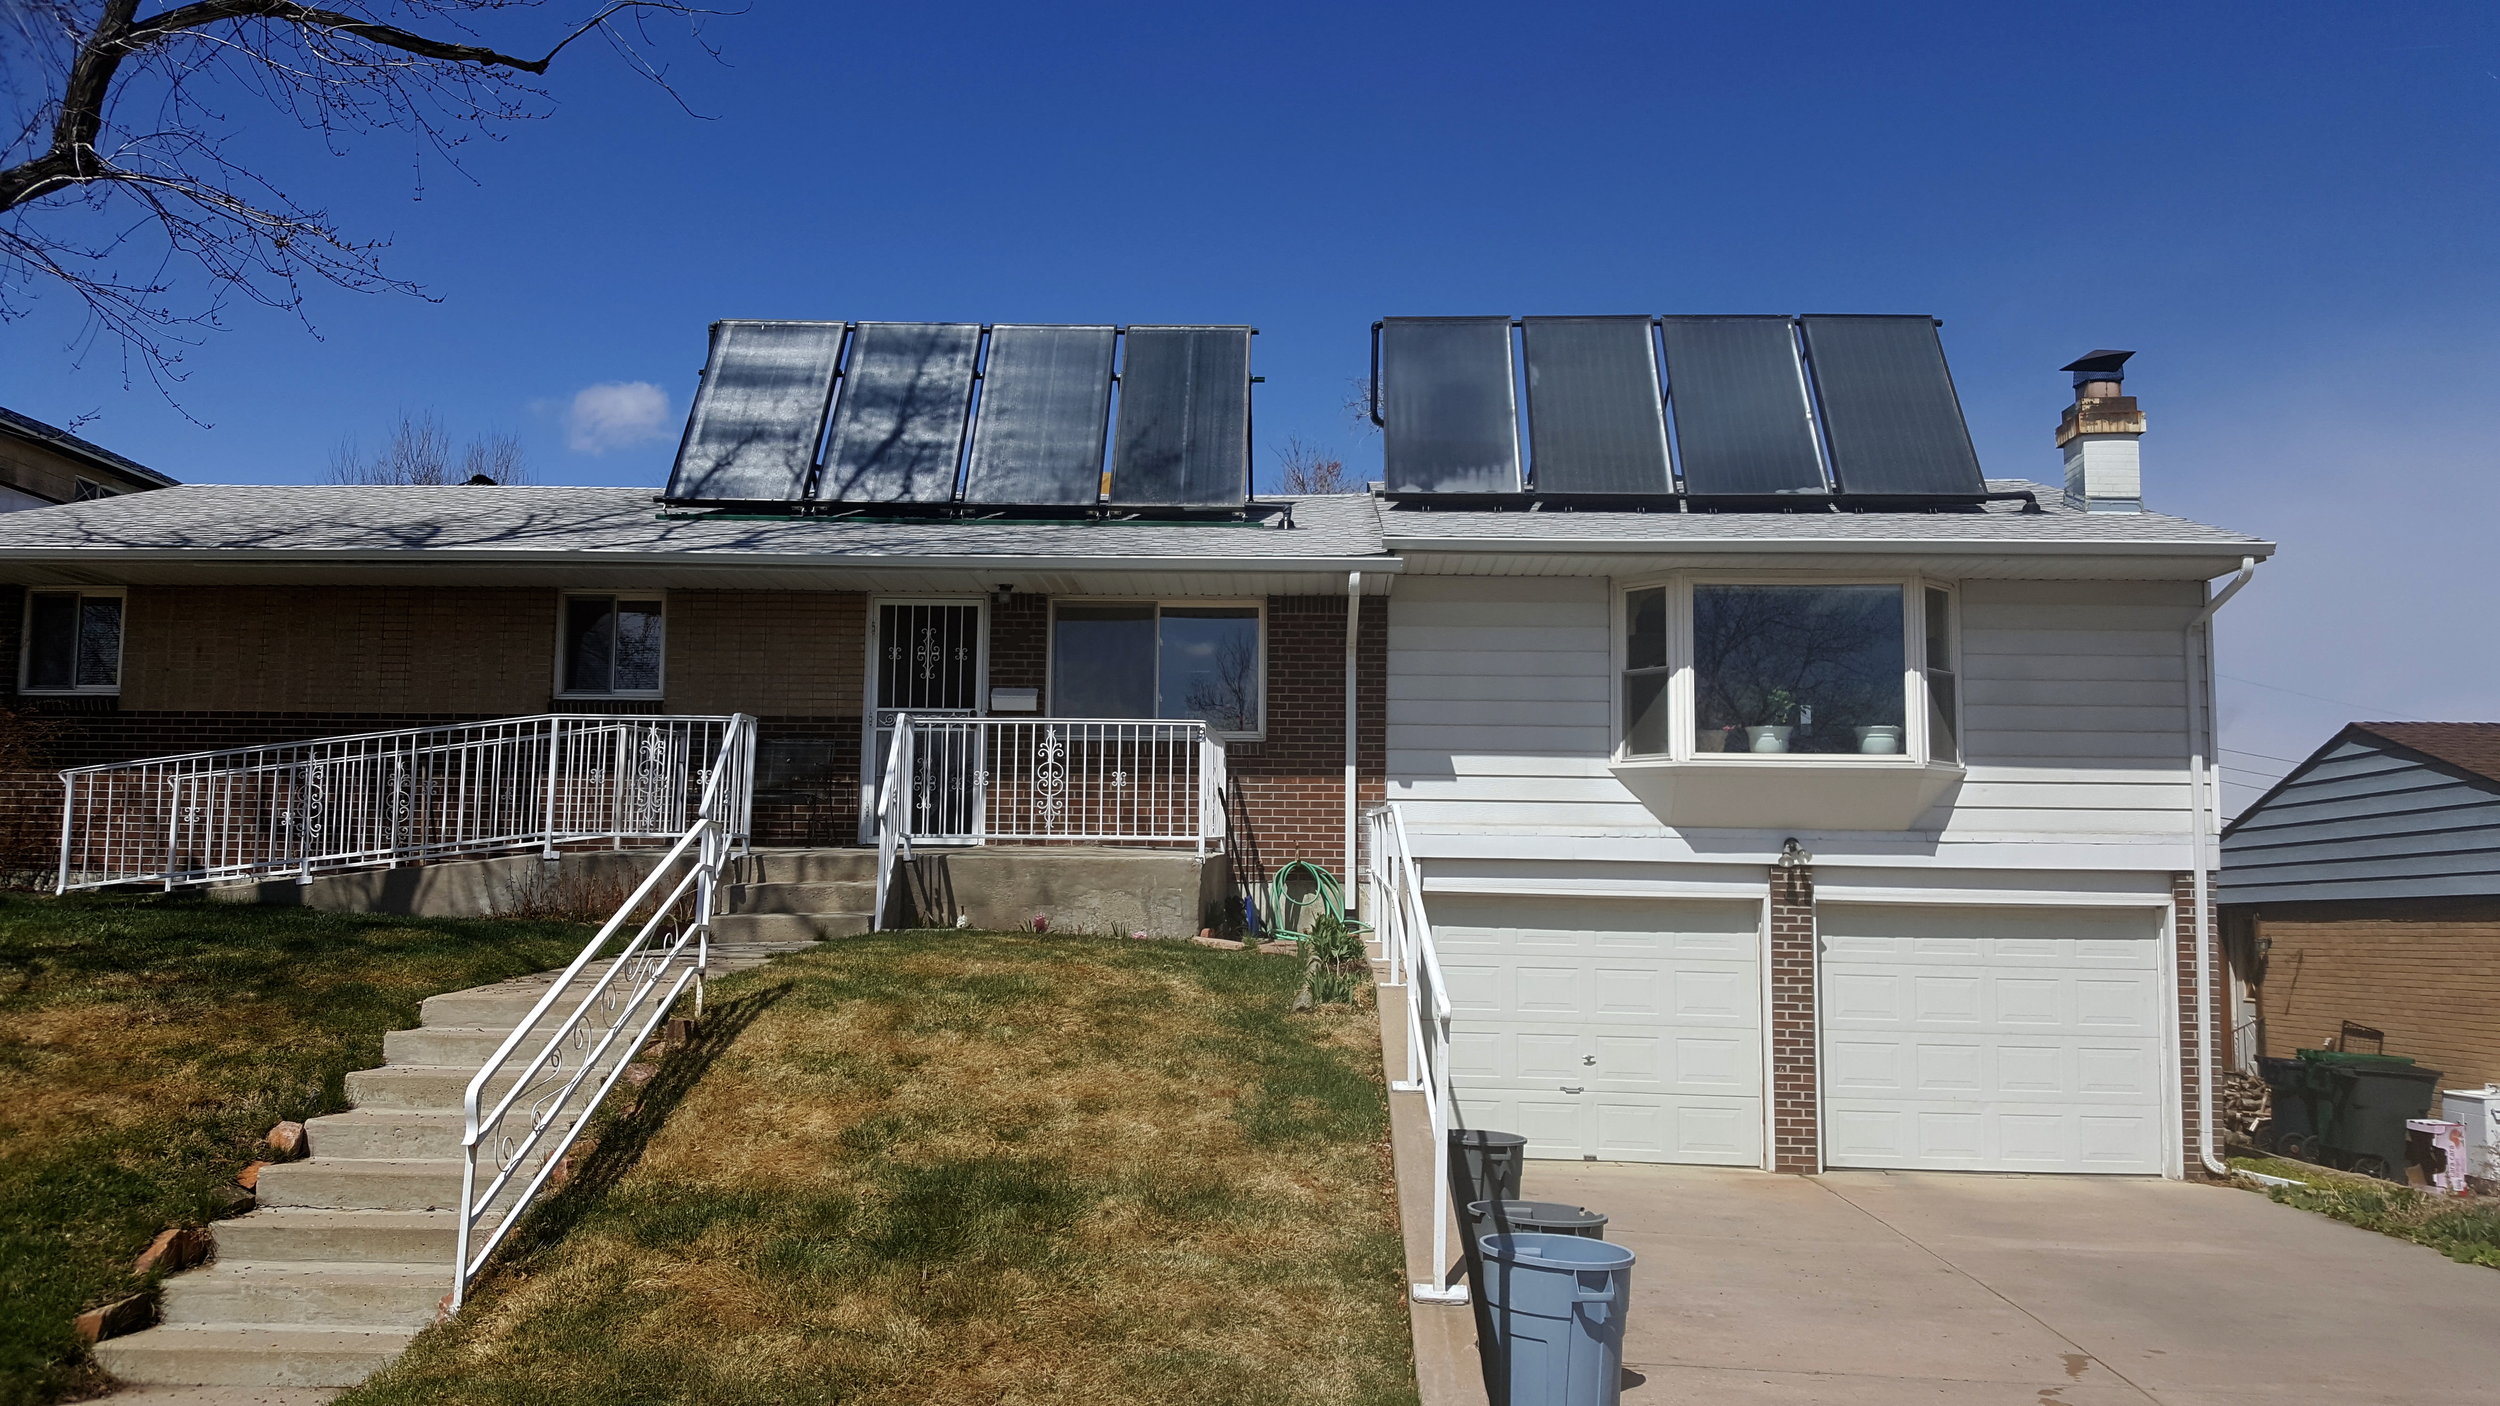 Eight panel tilt up solar hot water system in Denver, Colorado